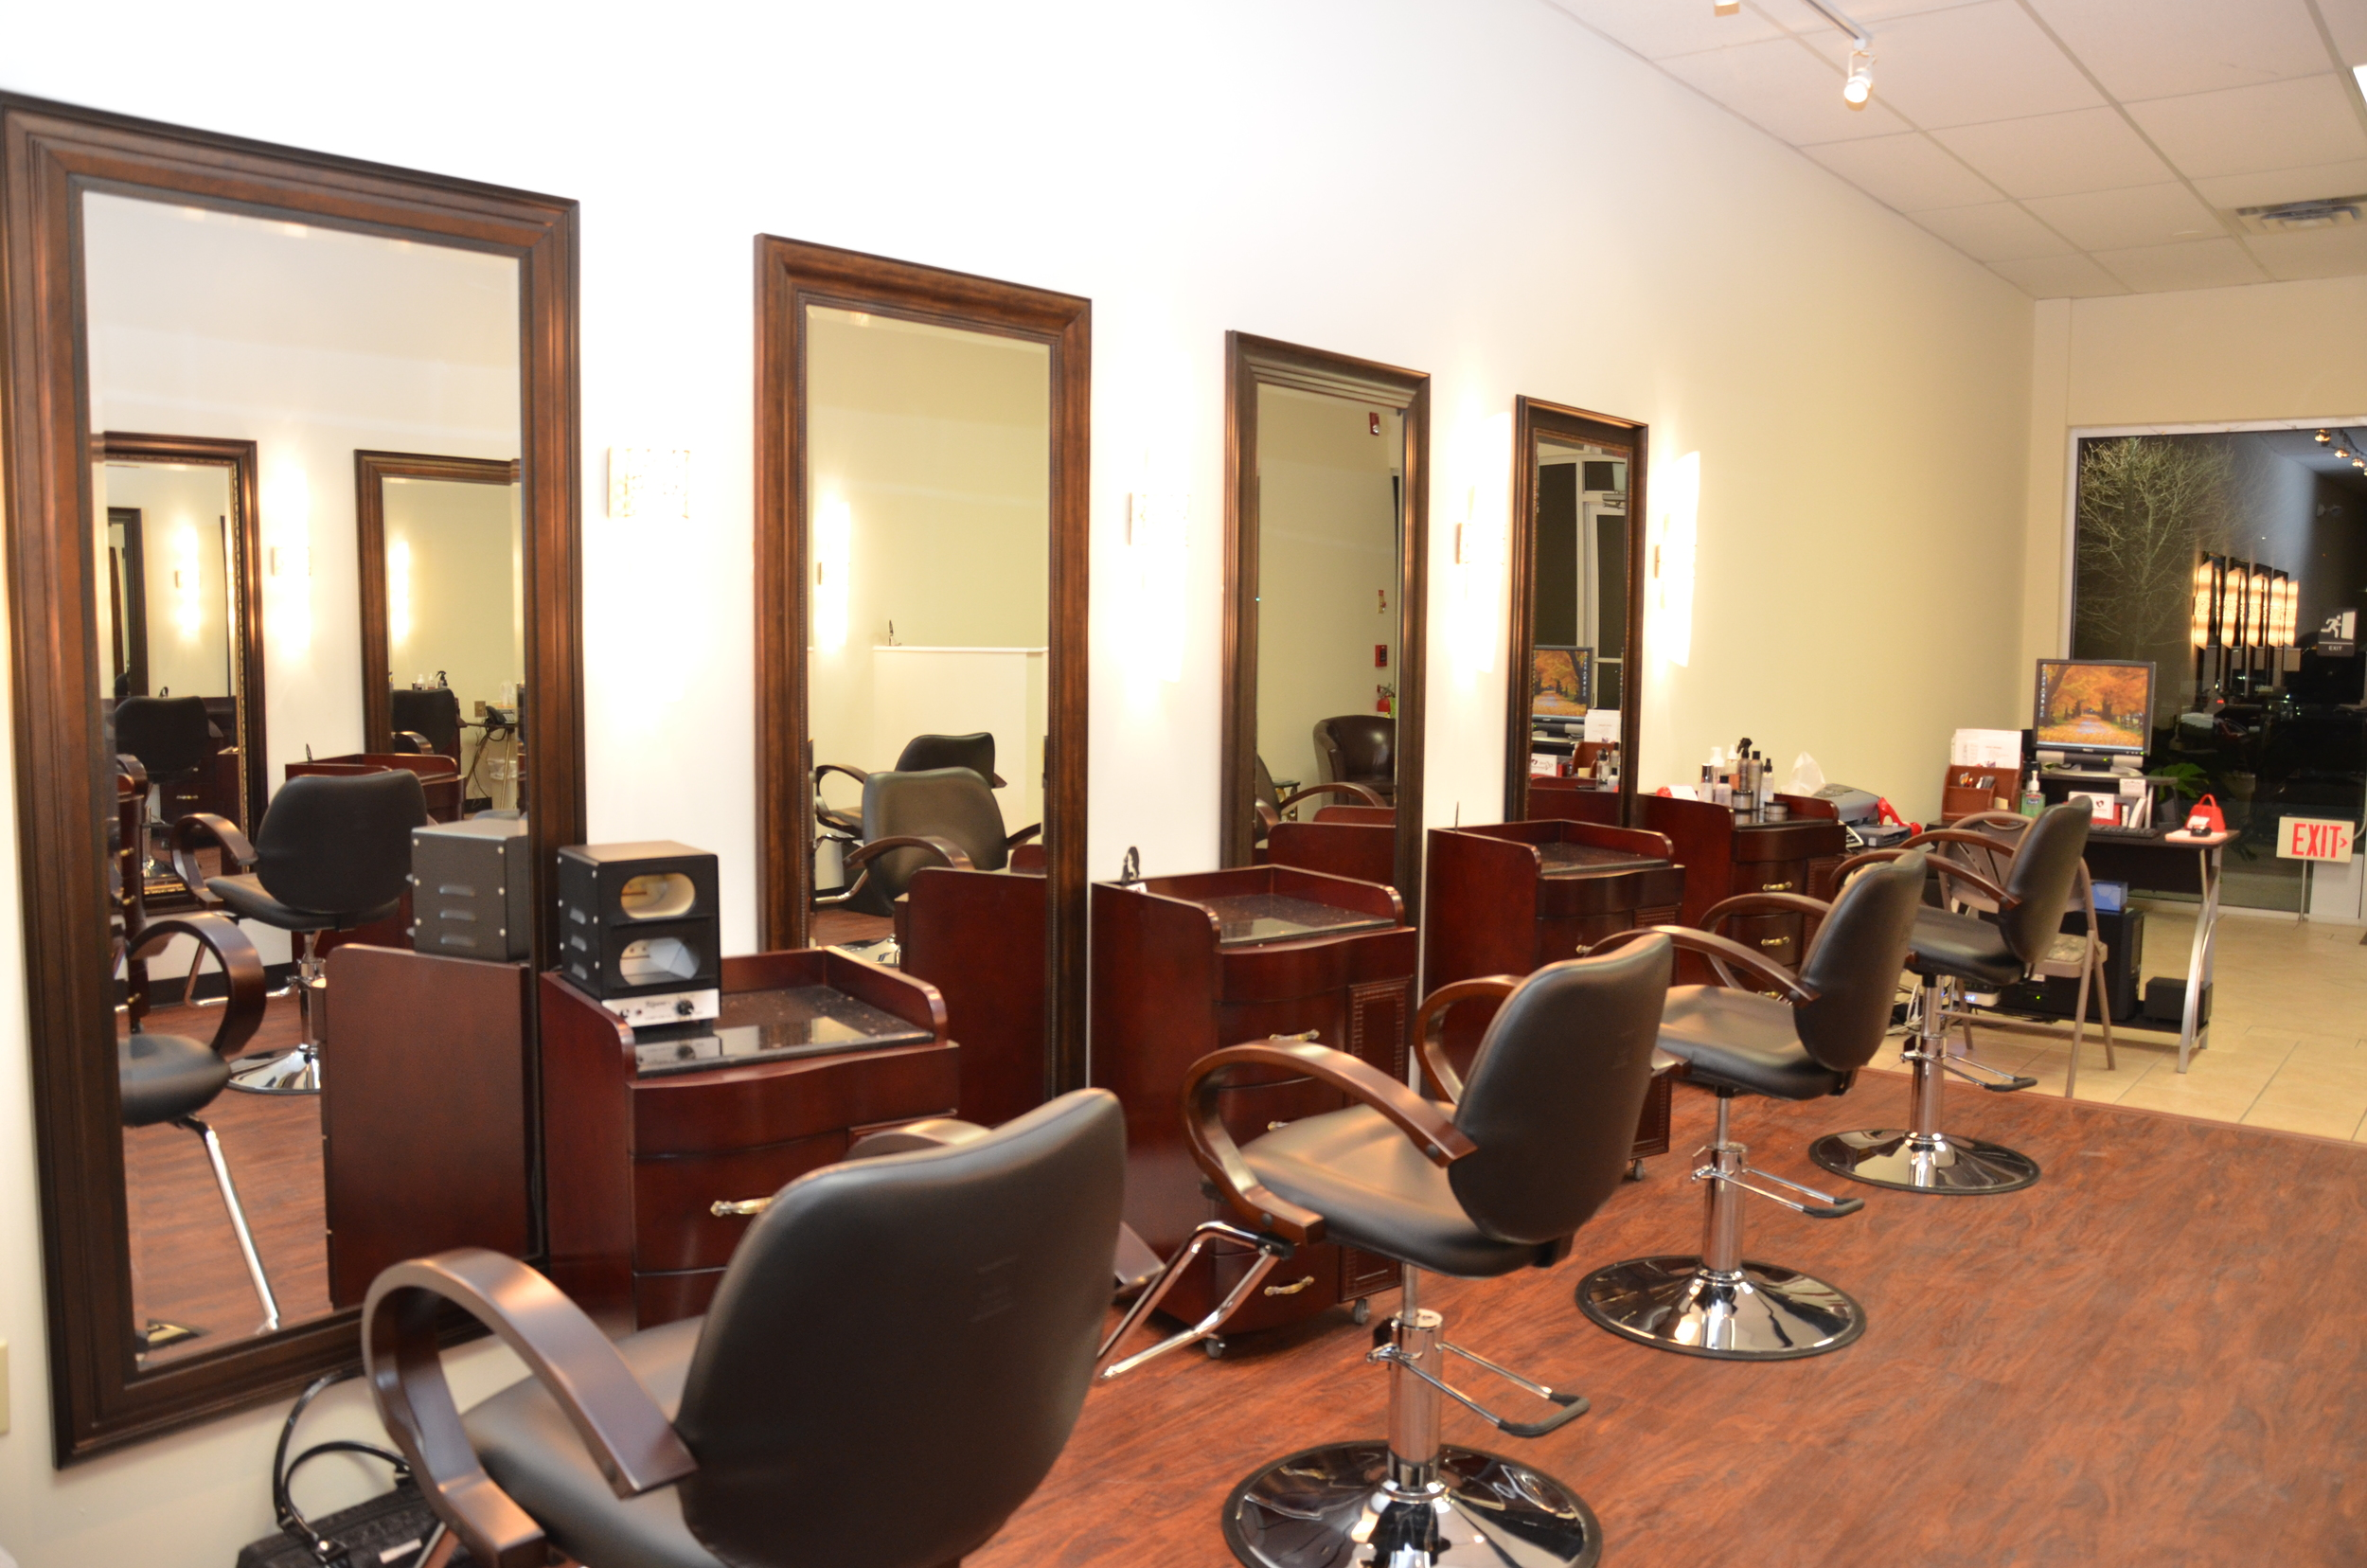 A Beauty Salon Located in East Norriton, PA.